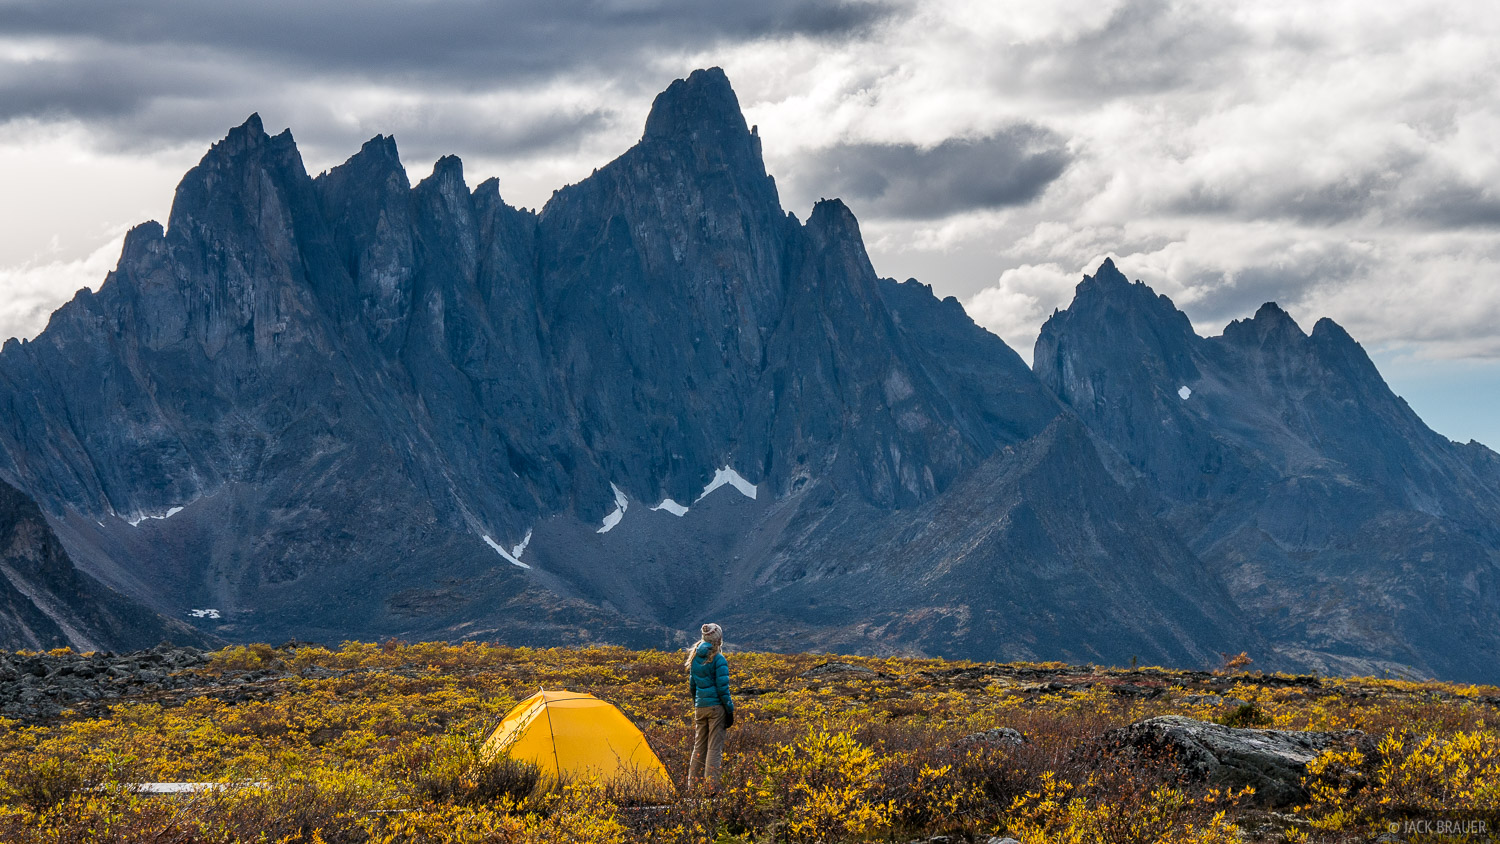 Canada, Tombstone Mountain, Tombstone Territorial Park, Yukon, tent, Tombstone Range, photo